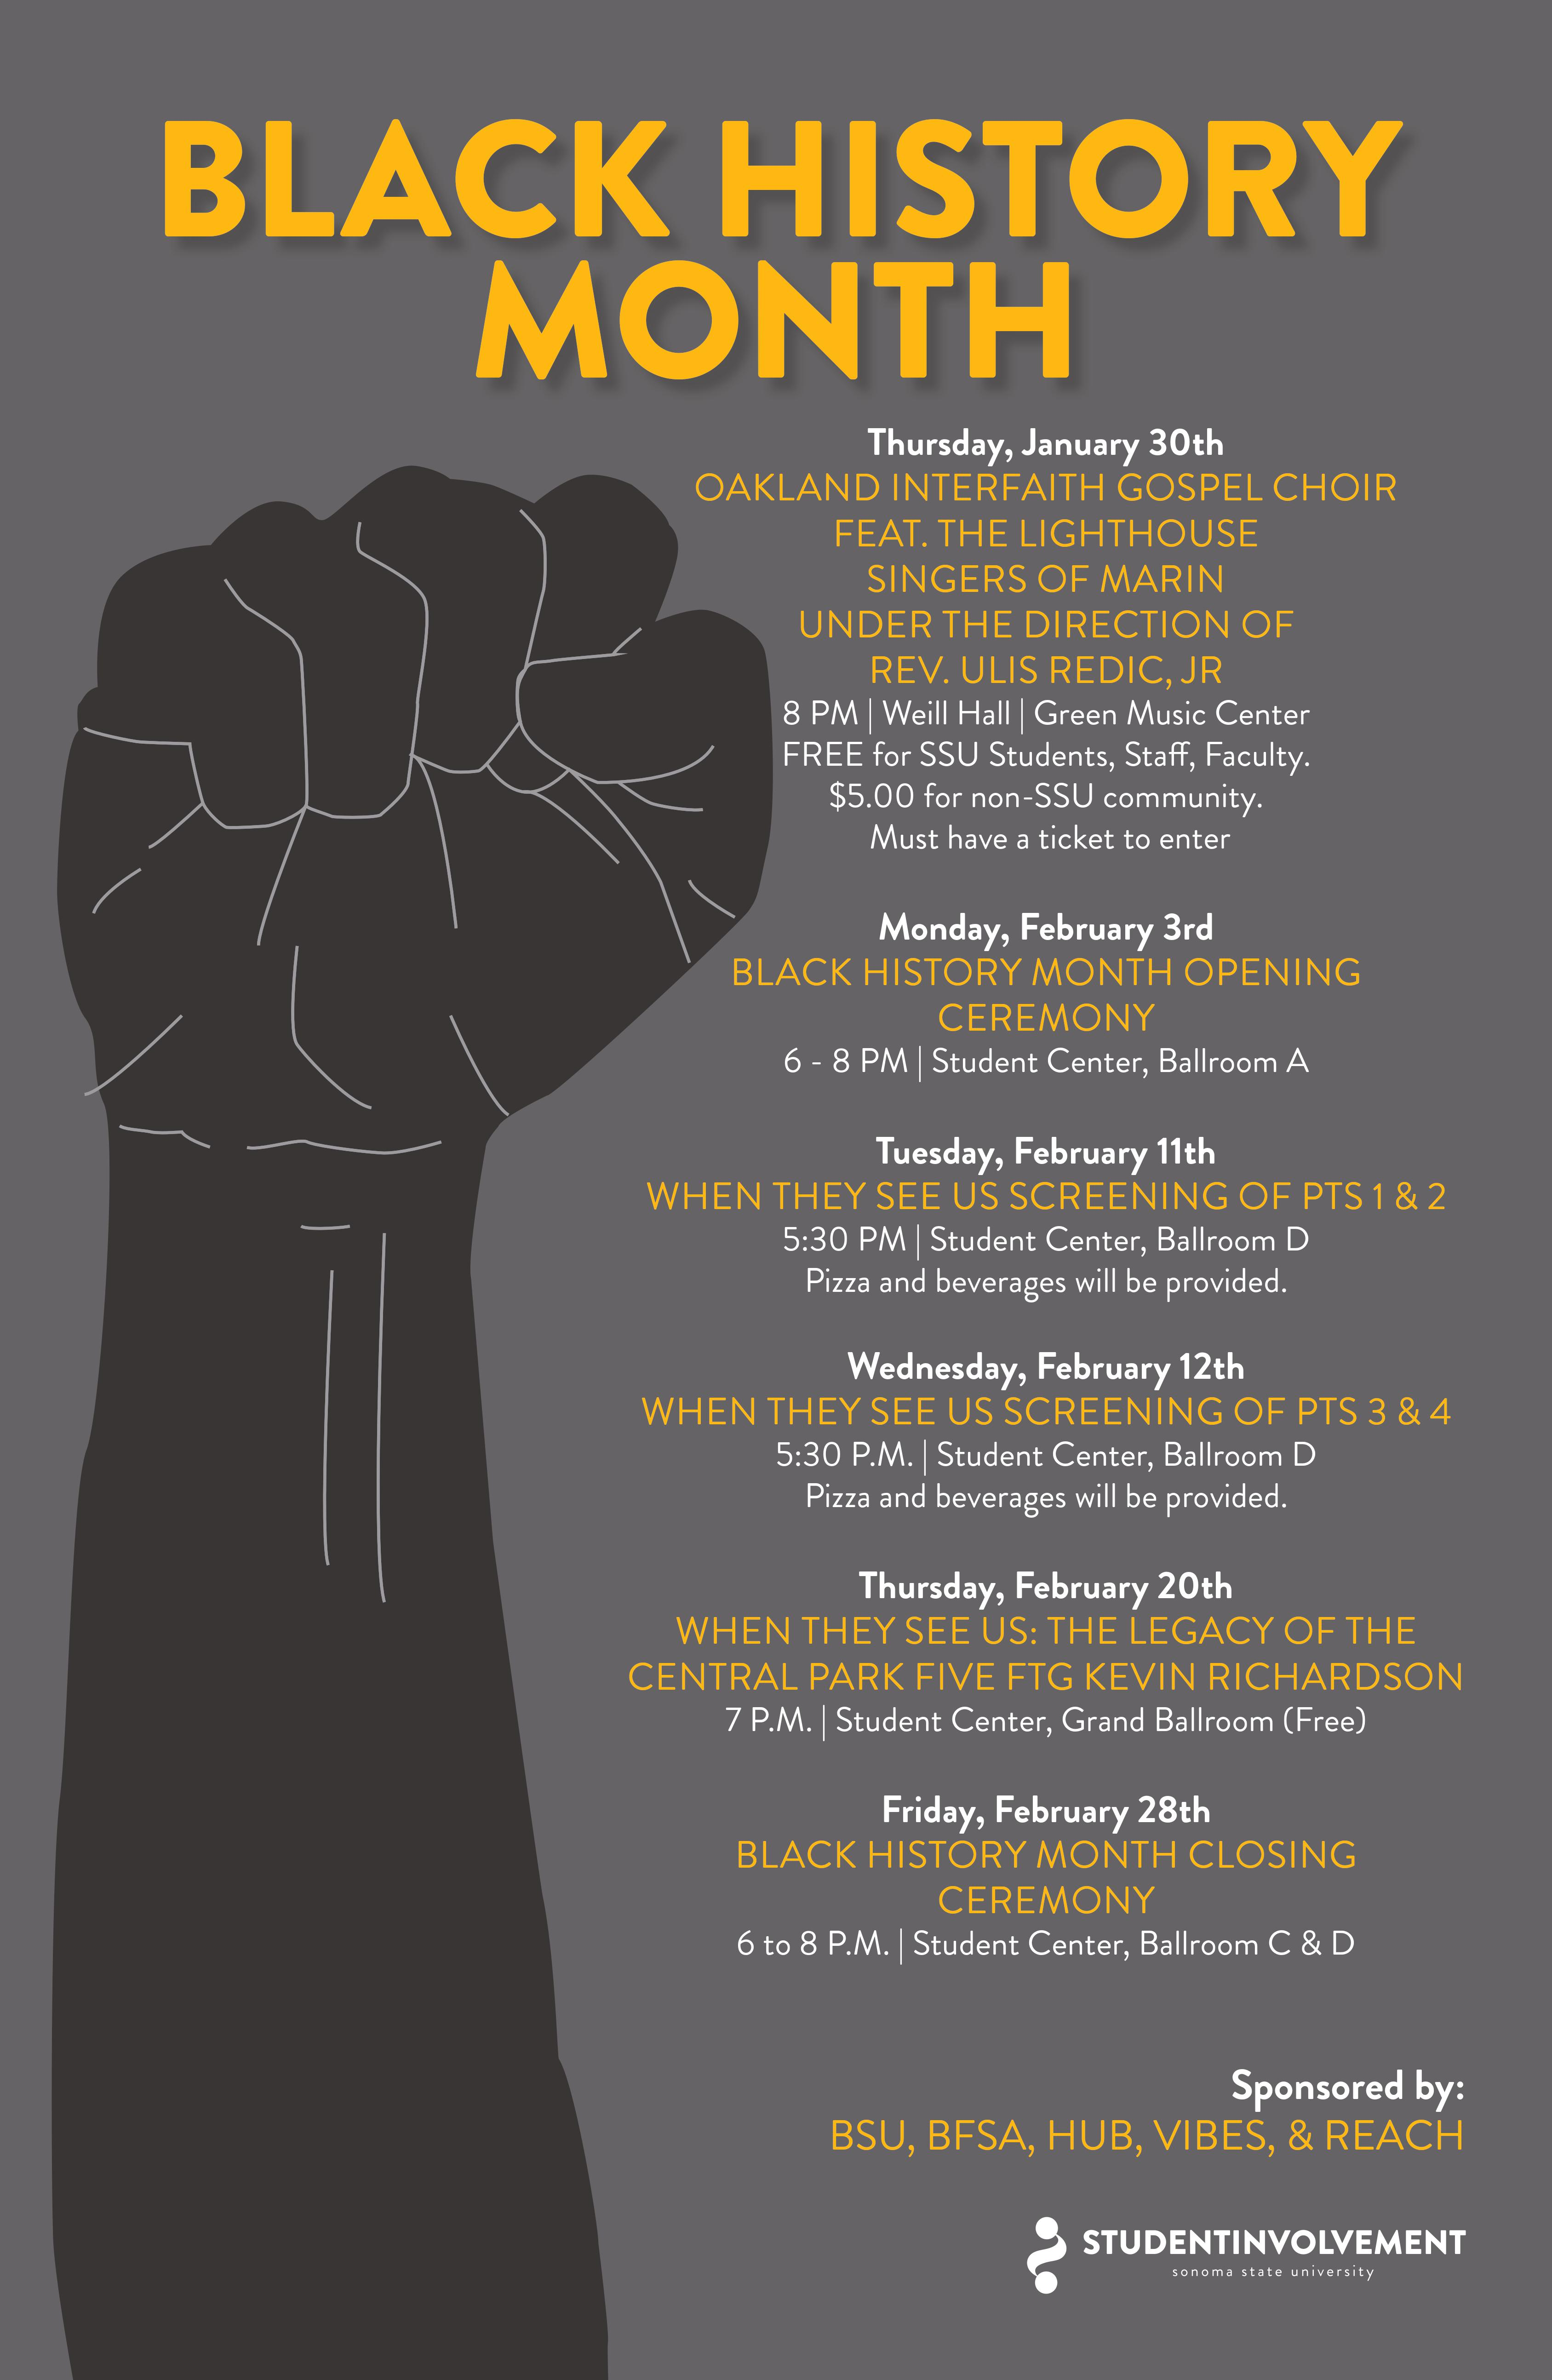 Black History Month info graphic poster